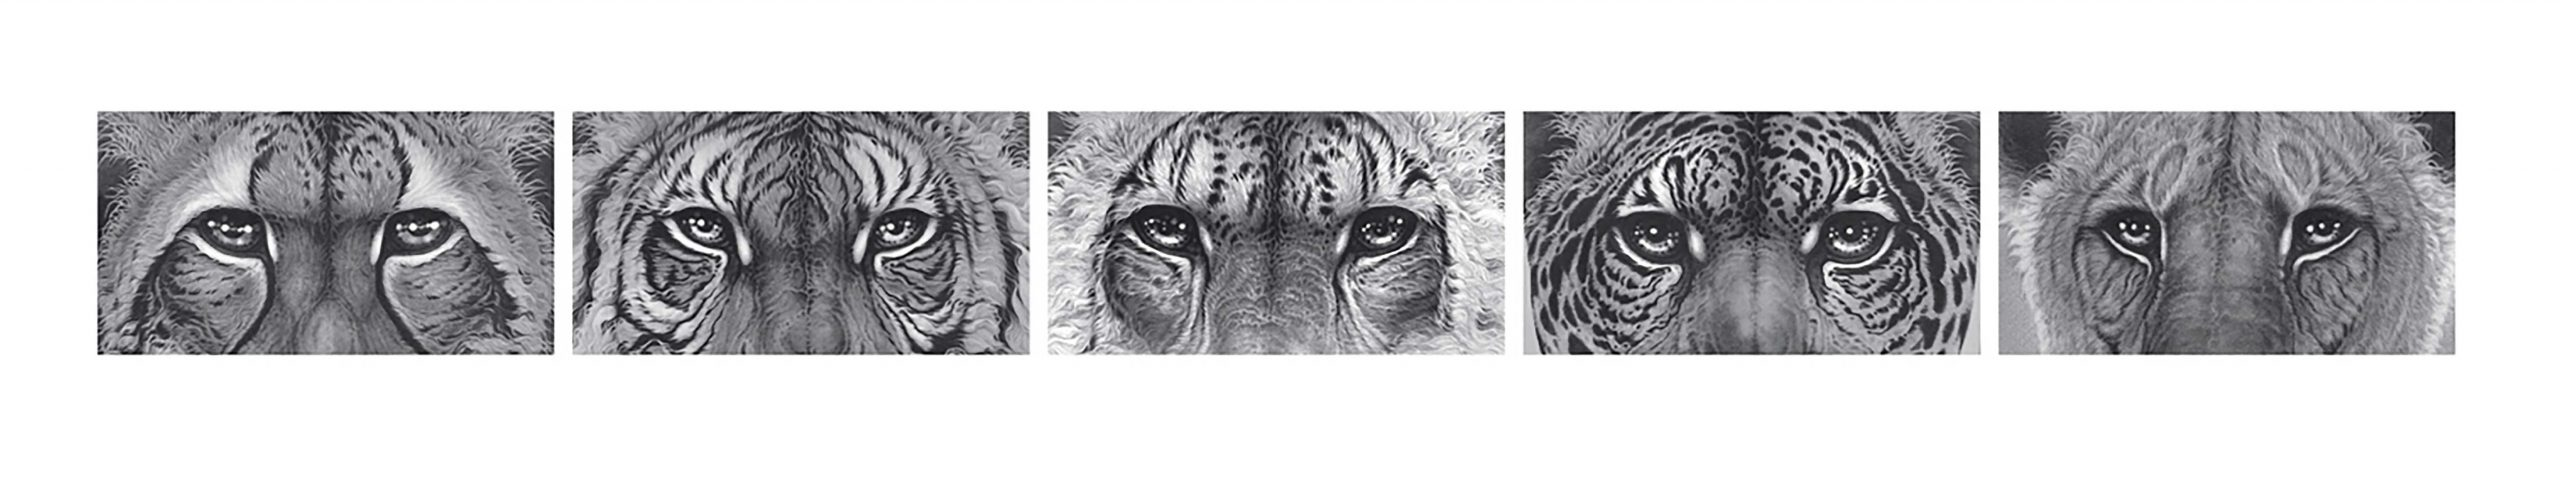 5 detailed drawings of wild cats eyes